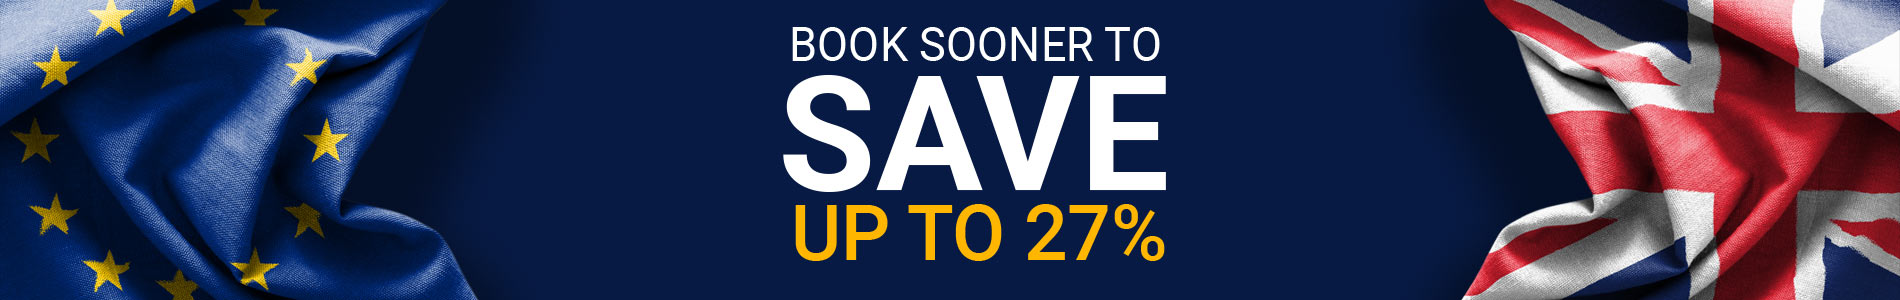 book sooner to save slider